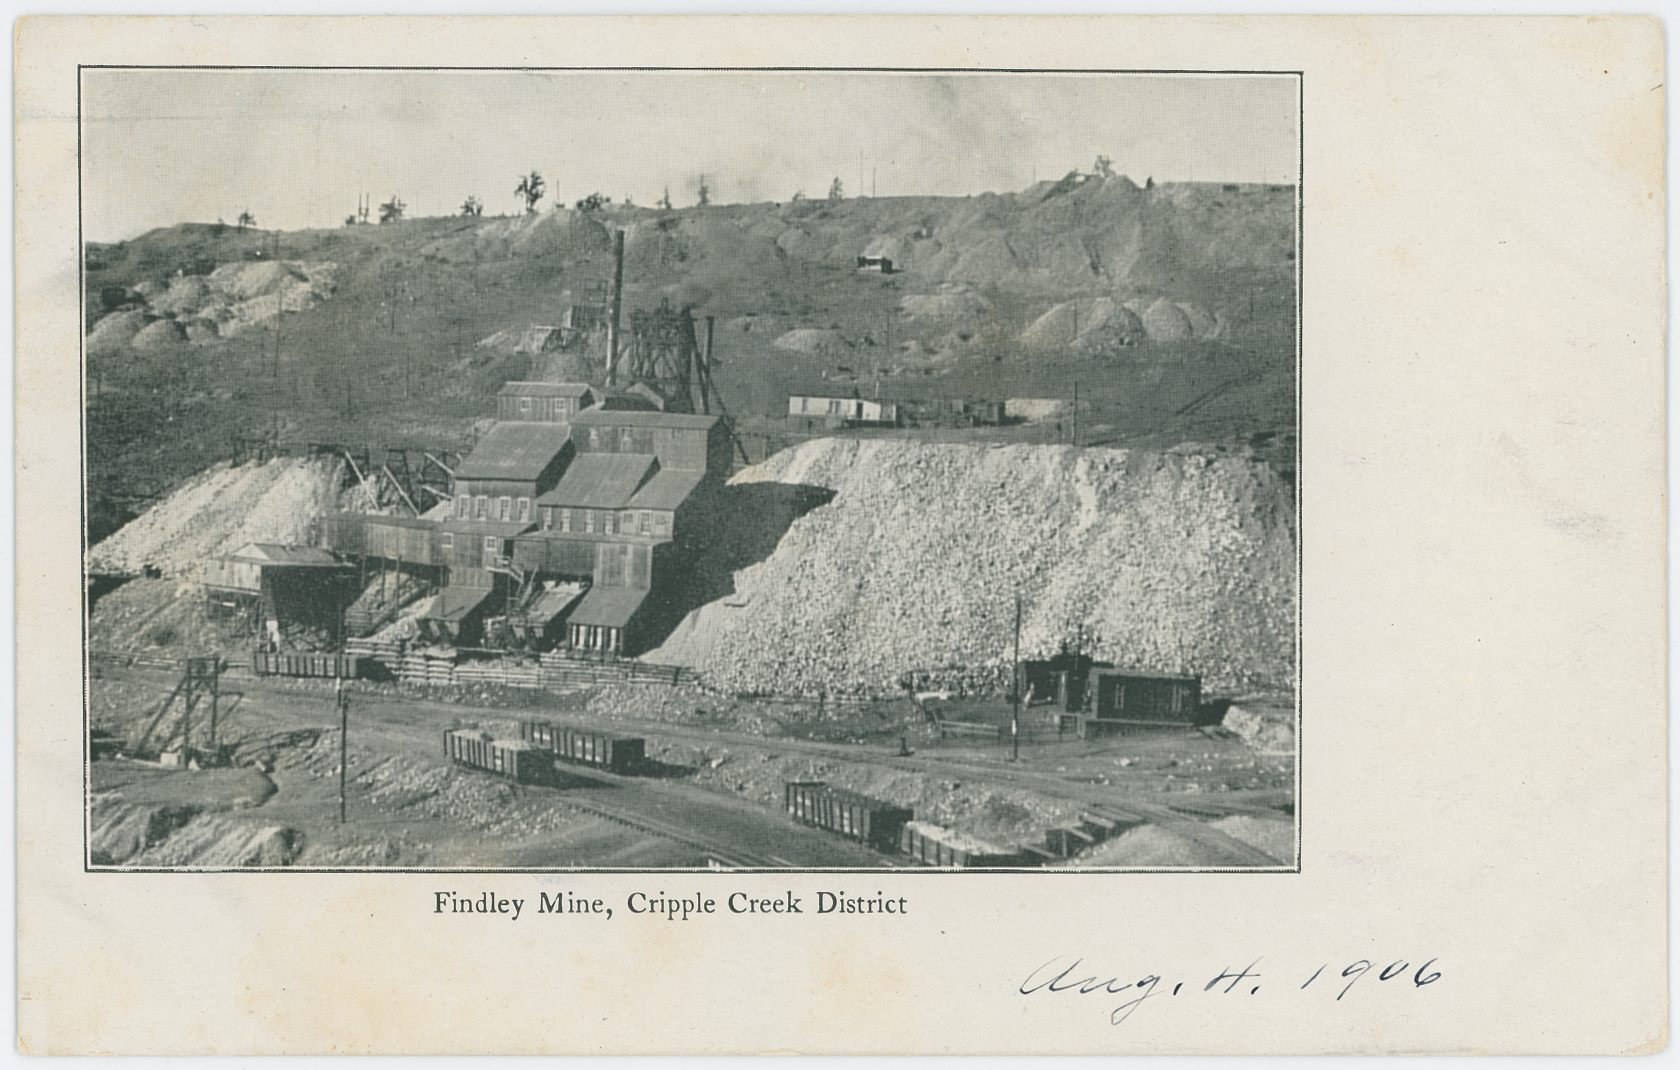 I never seen this view as a photograph, only as the printed image used for this postcard and two kind of postcard folders, where there where small images included inside one larger postcard view. This is a nice view of the large operations going down at the Findley Mine, with several smaller dumps seen in the distance, all on Bull Hill, looking westerly.    In the foreground several railroad cars on spurs belonging to the Golden Circle 3-foot railroad can be seen, and I would suspect the home seen in lower right is considered to be part of the Independence townsite even if I can't really see the town itself as that is outside the view at bottom.    The first two tracks from bottom up is sidings used to collect ore from horse run wagons from the many smaller mines in the area, while the spur just going to the bottom part of the right-hand bottom corner is a spur I've seen being connected to mine named Deadwood No. 2 if I've read images I've seen correctly. While the track going of into the right-hand side of the lower right bottom, that is part of the Golden Circle mainline that used to run passed the Independence Depot and unto the end loop at Vista Grande, sort of outside the view twice the width or so of this card to the right, higher up, behind the hill.